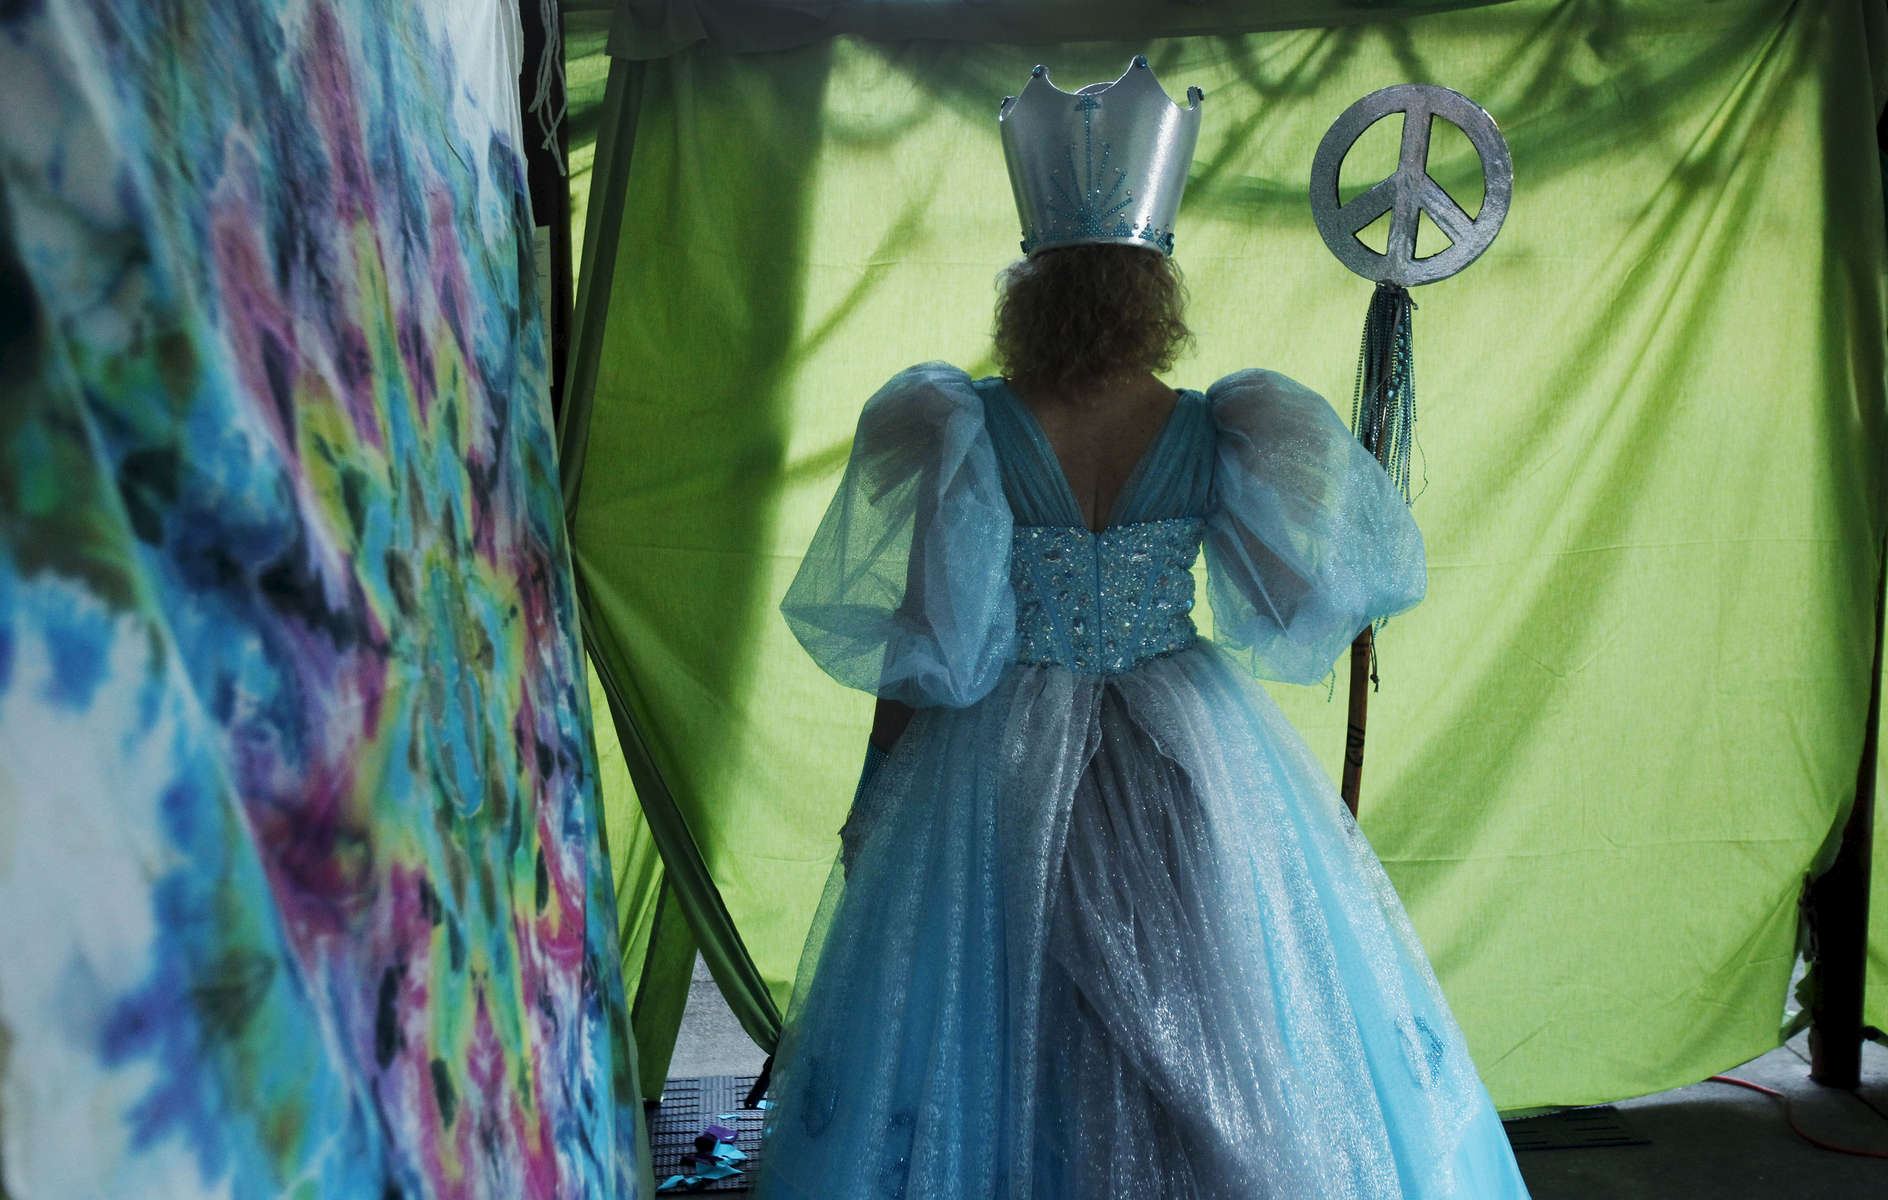 Peacetress Compassionata SlugAnela, aka Ani Sinclair, waits backstage before being called upon to answer a question during the 32nd Slug Queen Coronation in Eugene on Friday, August 8, 2014. (Andy Nelson/The Register-Guard)